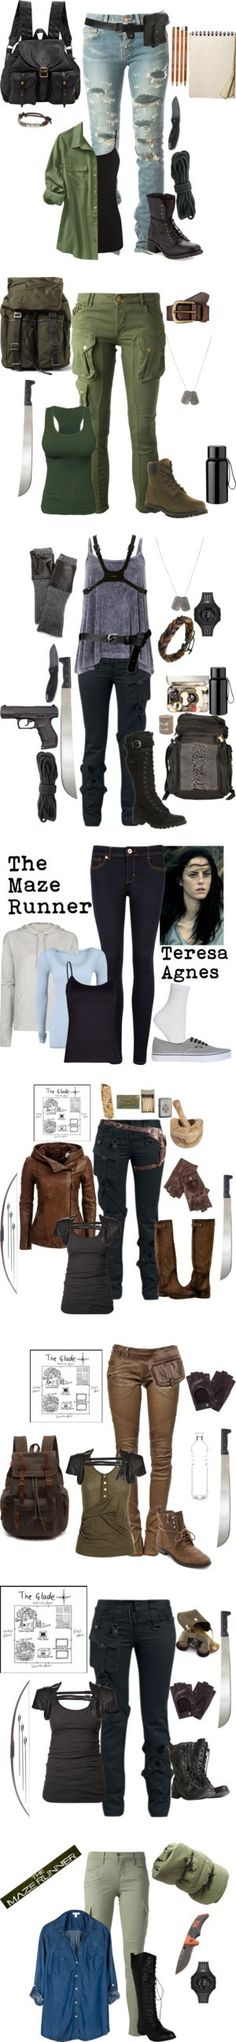 maze runner outfits by gone-girl on Polyvore featuring Yves Saint Laurent, Warehouse, Old Navy, Kershaw, Jas M.B., American Eagle Outfitters, Modern Vintage, Dolce&Gabbana, CYCLE and Liebeskind